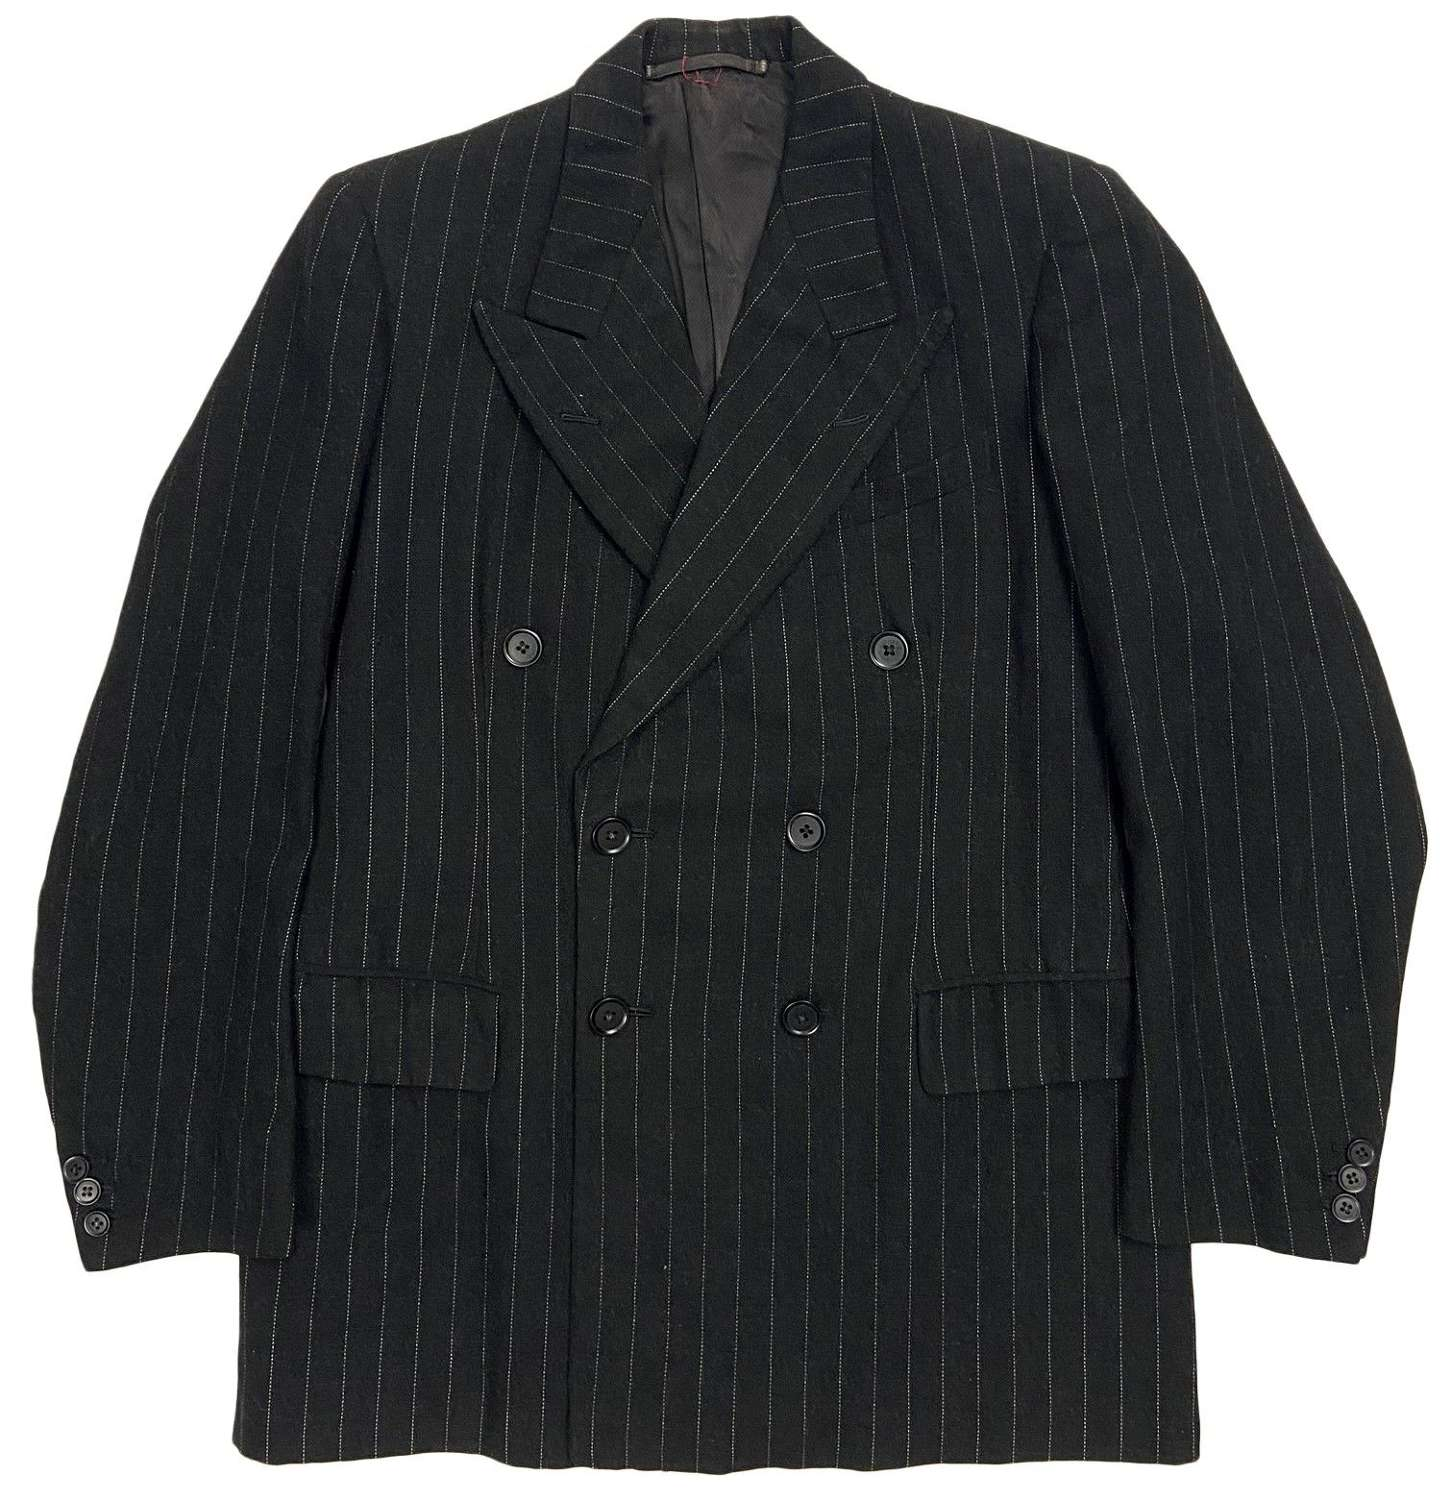 Original 1951 Dated Men's Double Breasted Jacket by 'Herbert Chappell'